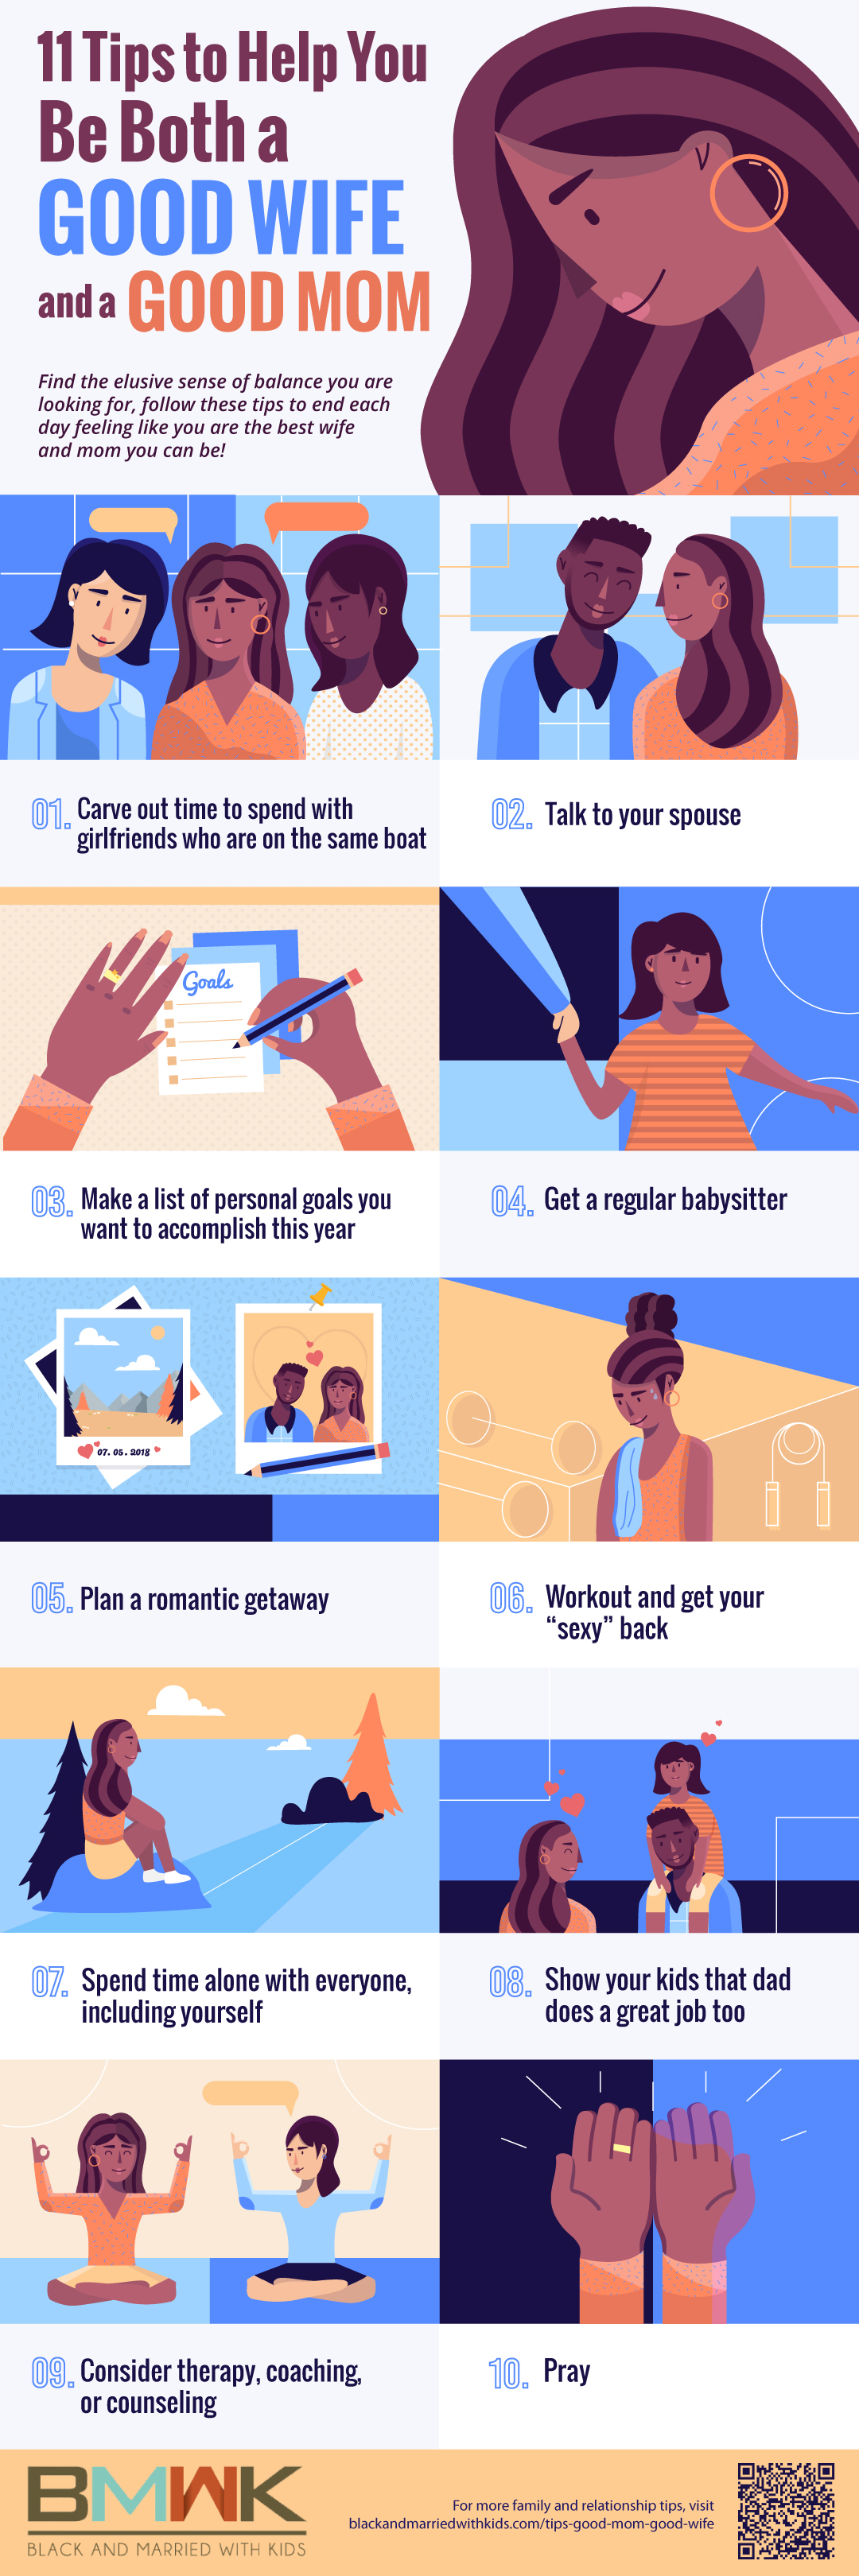 infographic | Tips to Help You Be Both a Good Mom and a Good Wife | How to be a Good Mom